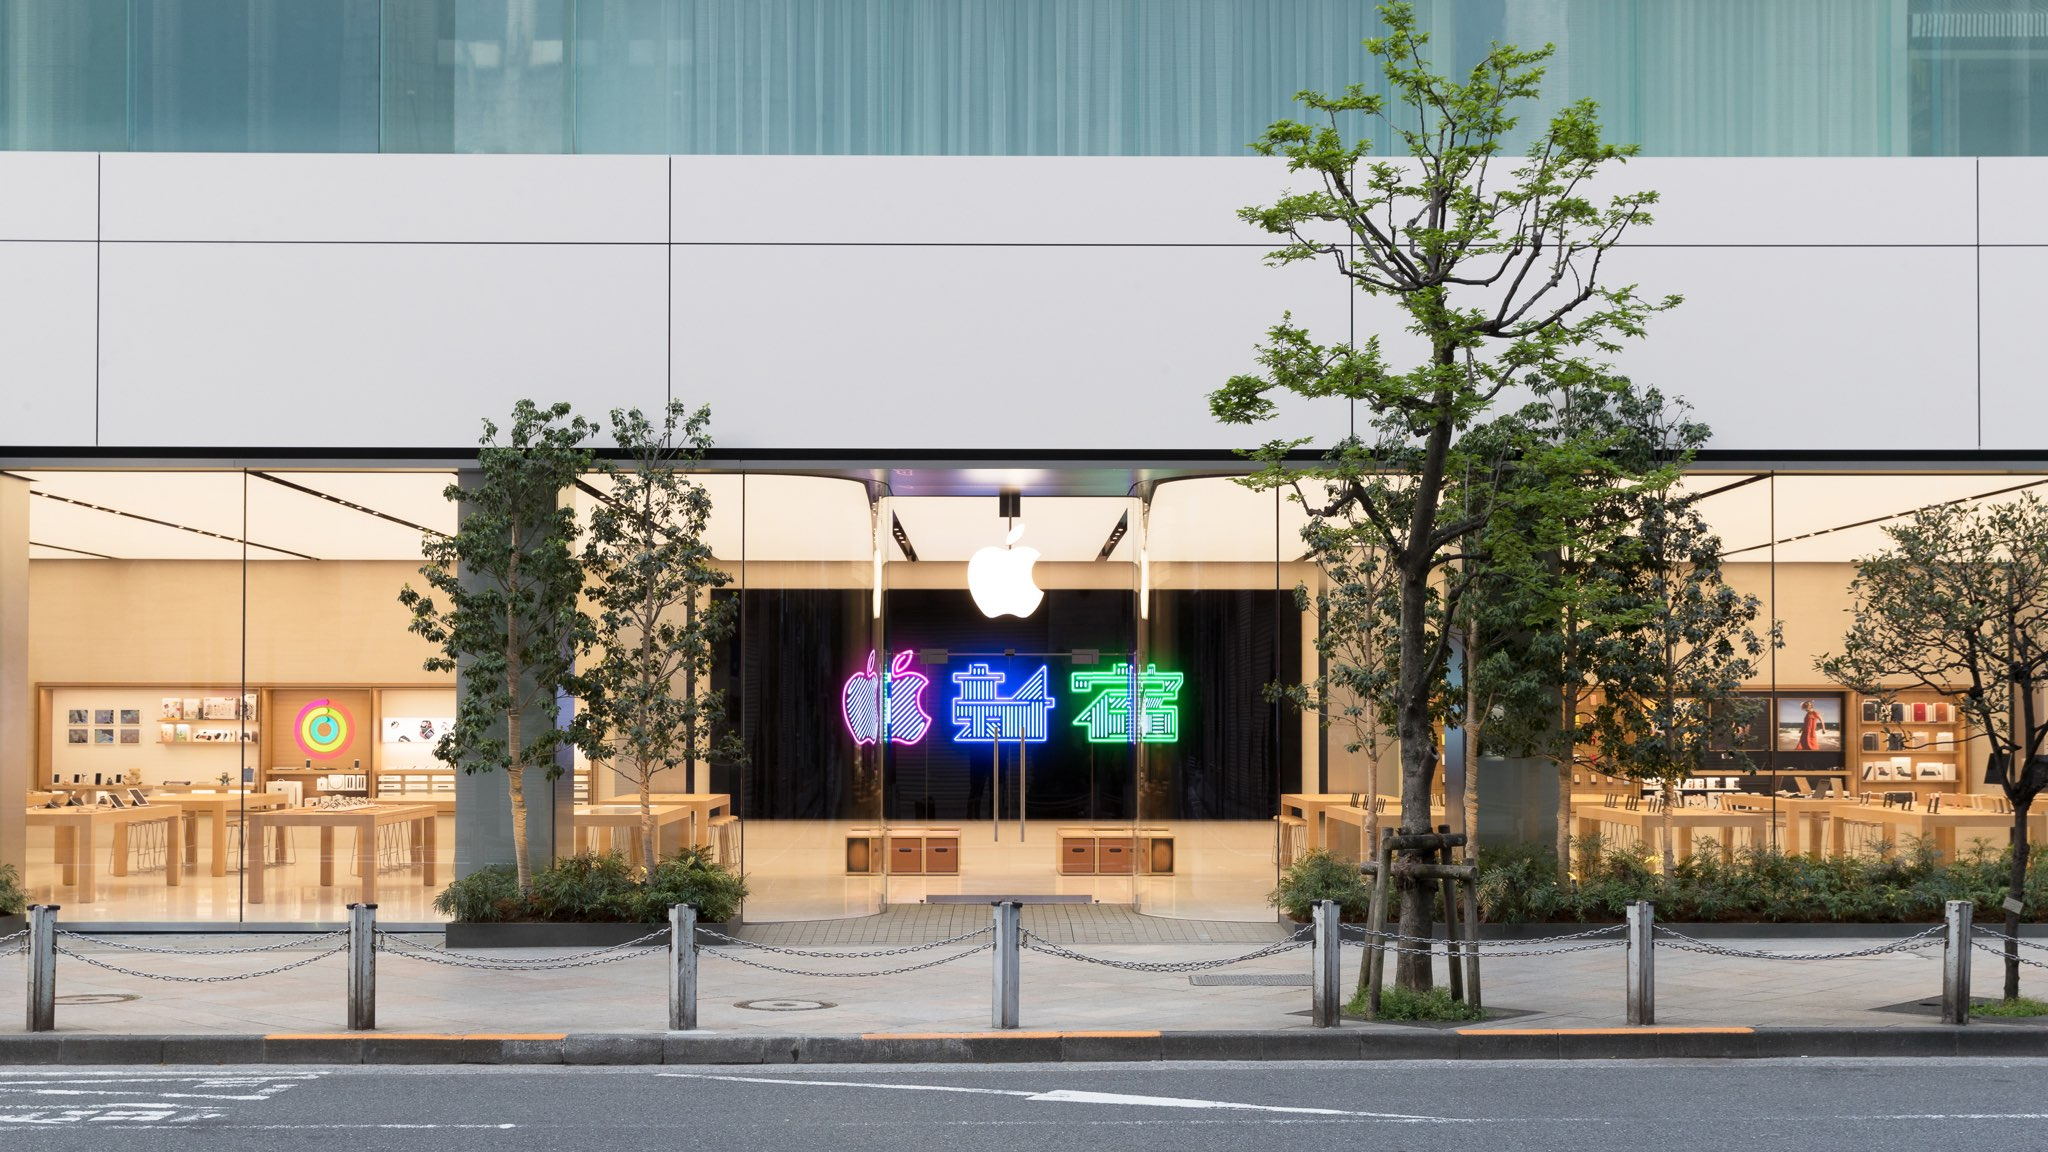 Like Other Major Stores Apple Opened Or Renovated In The Past Two Years,  Apple Shinjuku Features Sequoia Wood Tables And Shelves, Wooden Cabinets  For ...